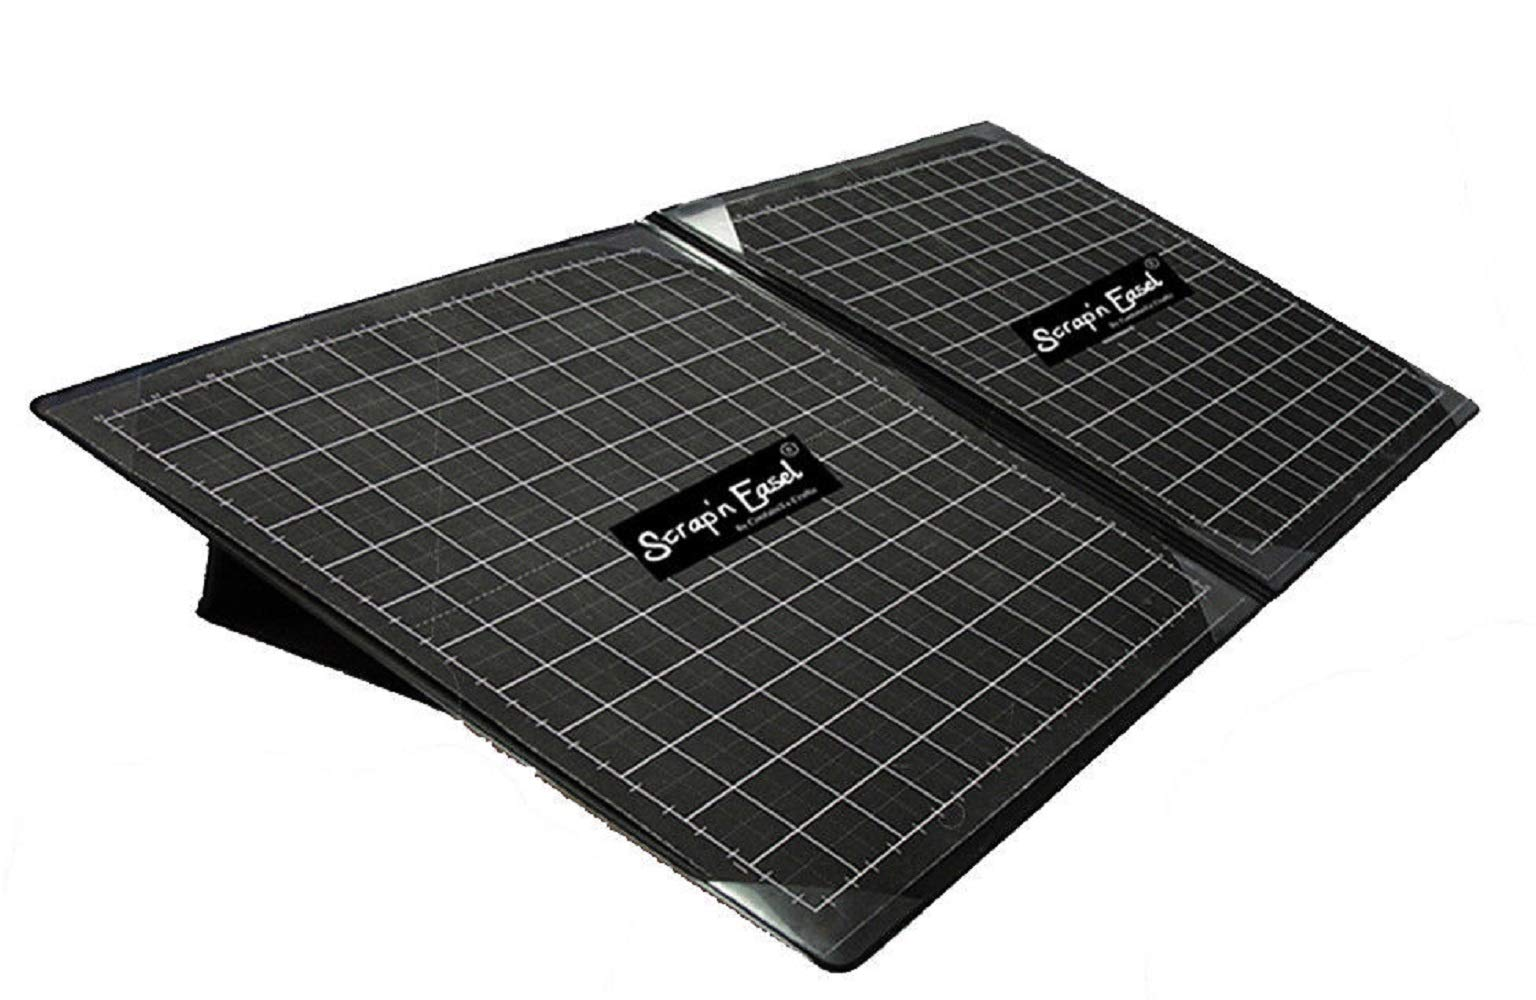 Scrap 'n Easel Magnetic Portable Double Grid Layout Scrapbook Style Ergonomic Work Surface by ContainYaCrafts